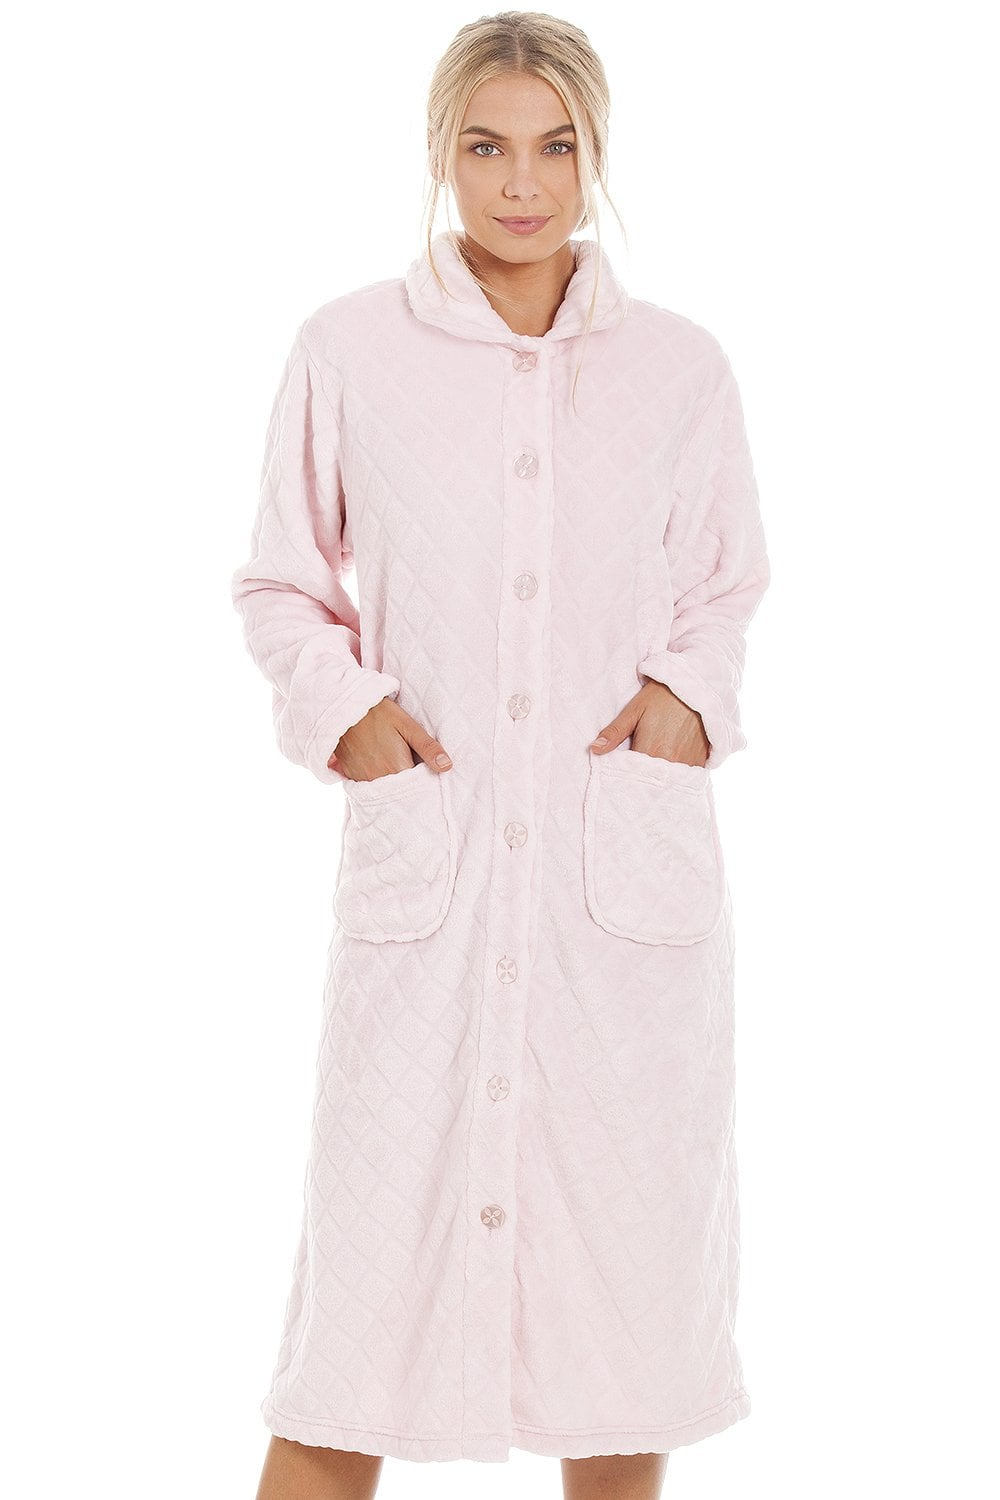 Camille Womens Supersoft Light Pink Button Front Diamond Print Housecoat f34b02cee